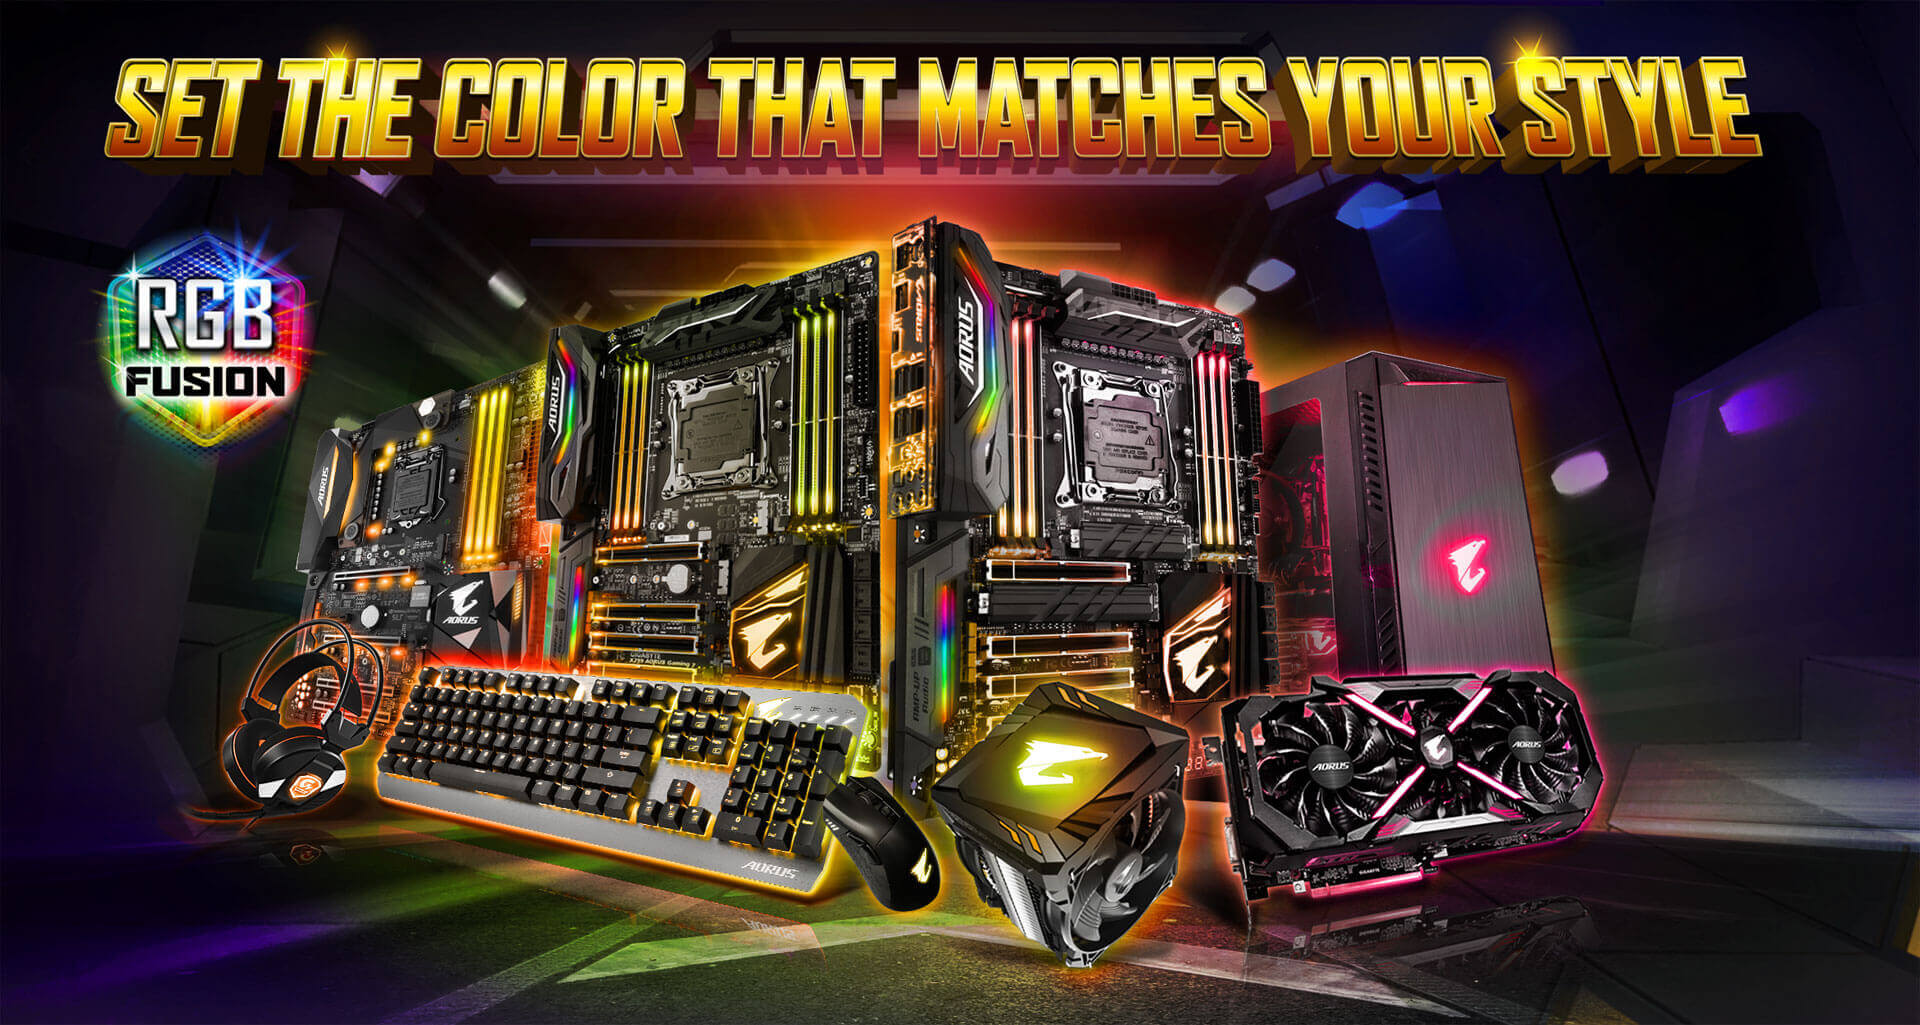 Z370 Aorus Gaming Wifi Rev 10 Motherboard Gigabyte Global V Gen Memori Komputer With A Dazzling Array Of Products Supported Rgb Fusion Is The Software That Brings It All Together Letting Your Accessories Synchronize To Same Beat